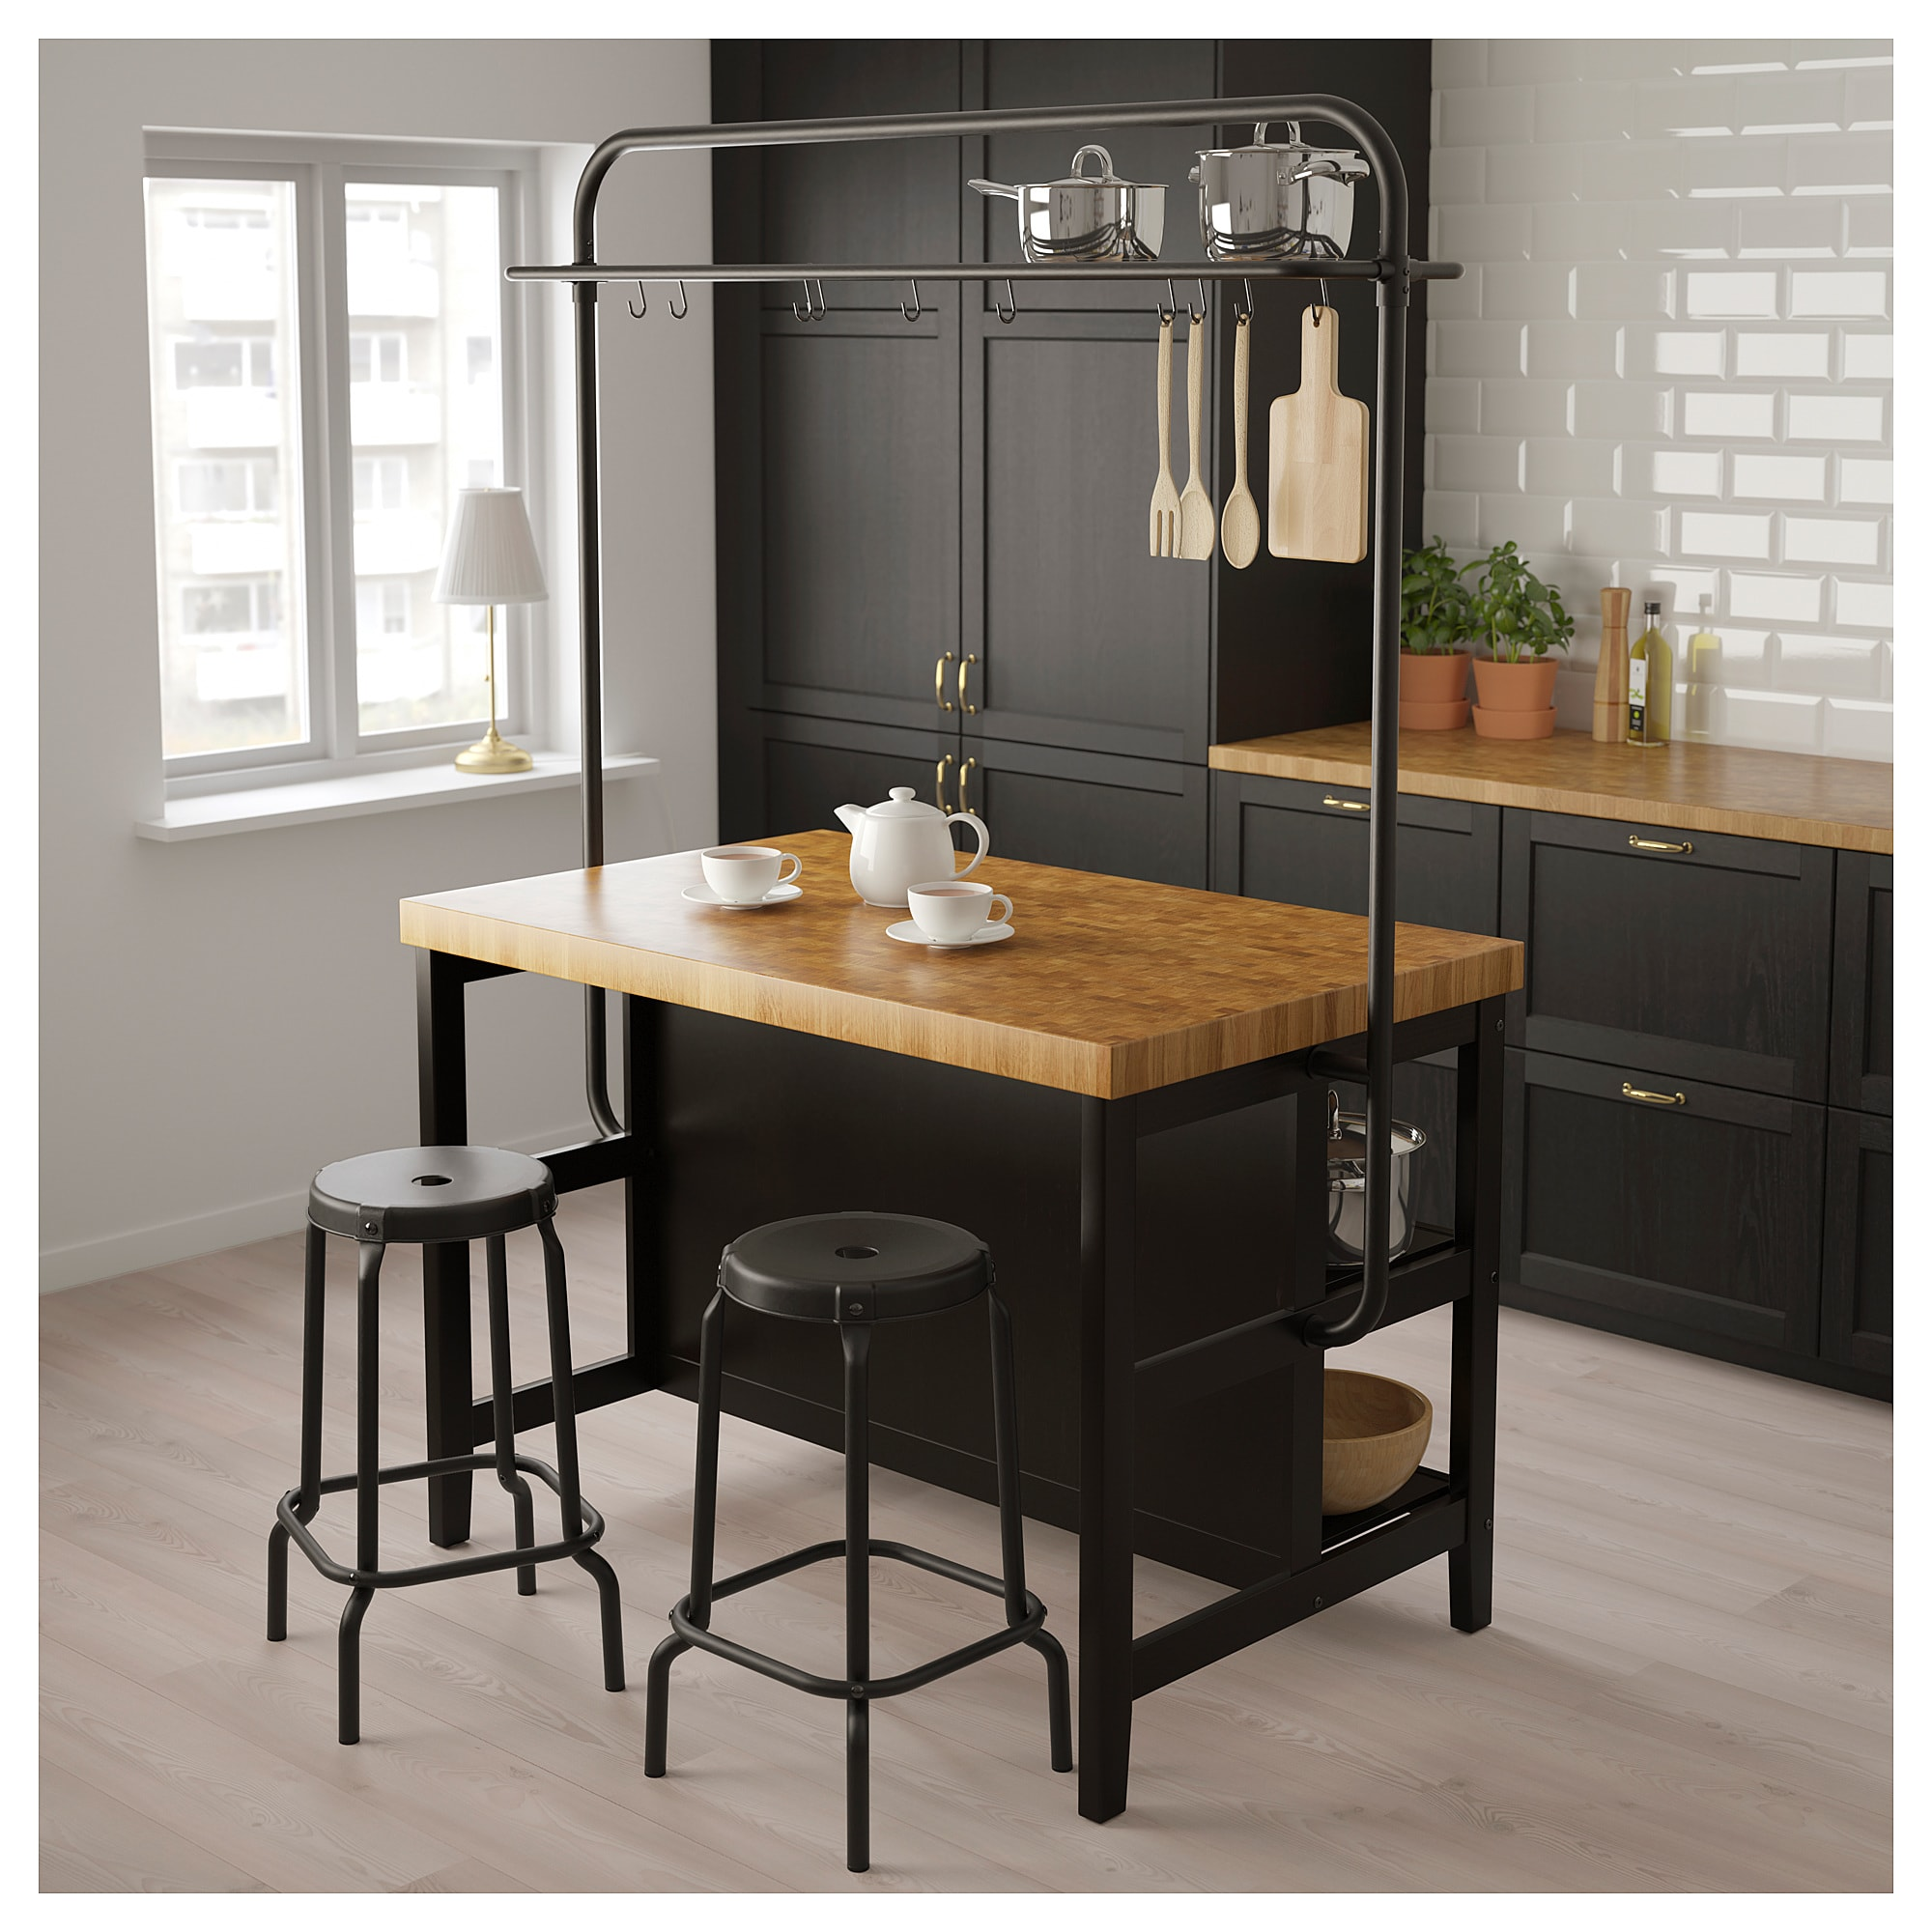 Ikea Kücheninsel Ideen Vadholma Kitchen Island With Rack, Black, Oak In 2019